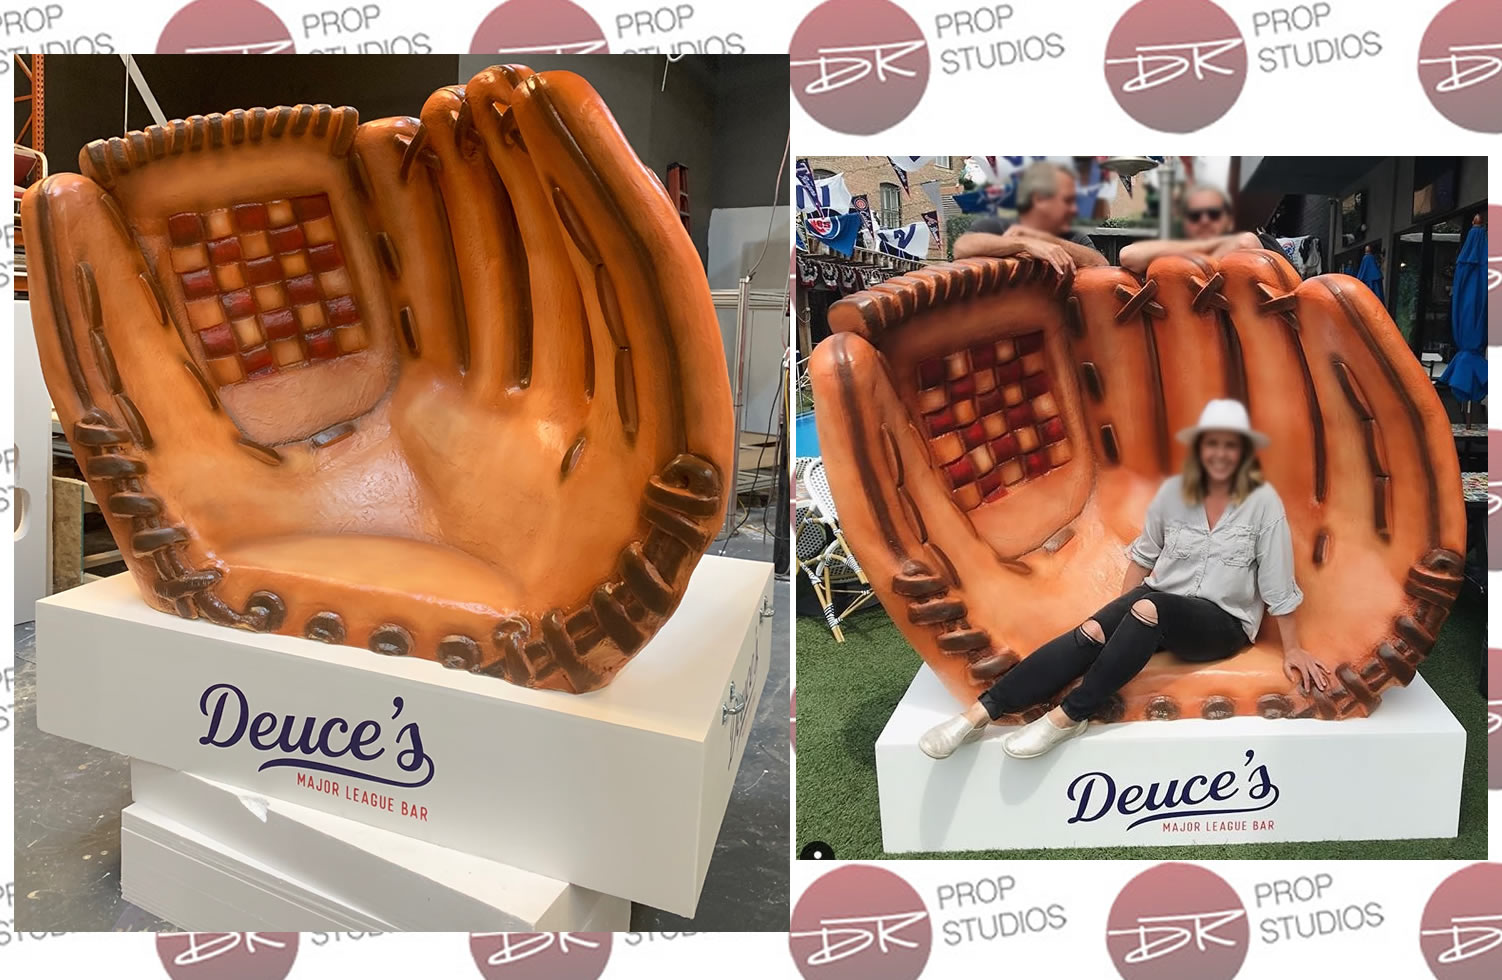 Large Foam Baseball Glove Seat Chair for Deuce's Major League Bar in Chicagpo